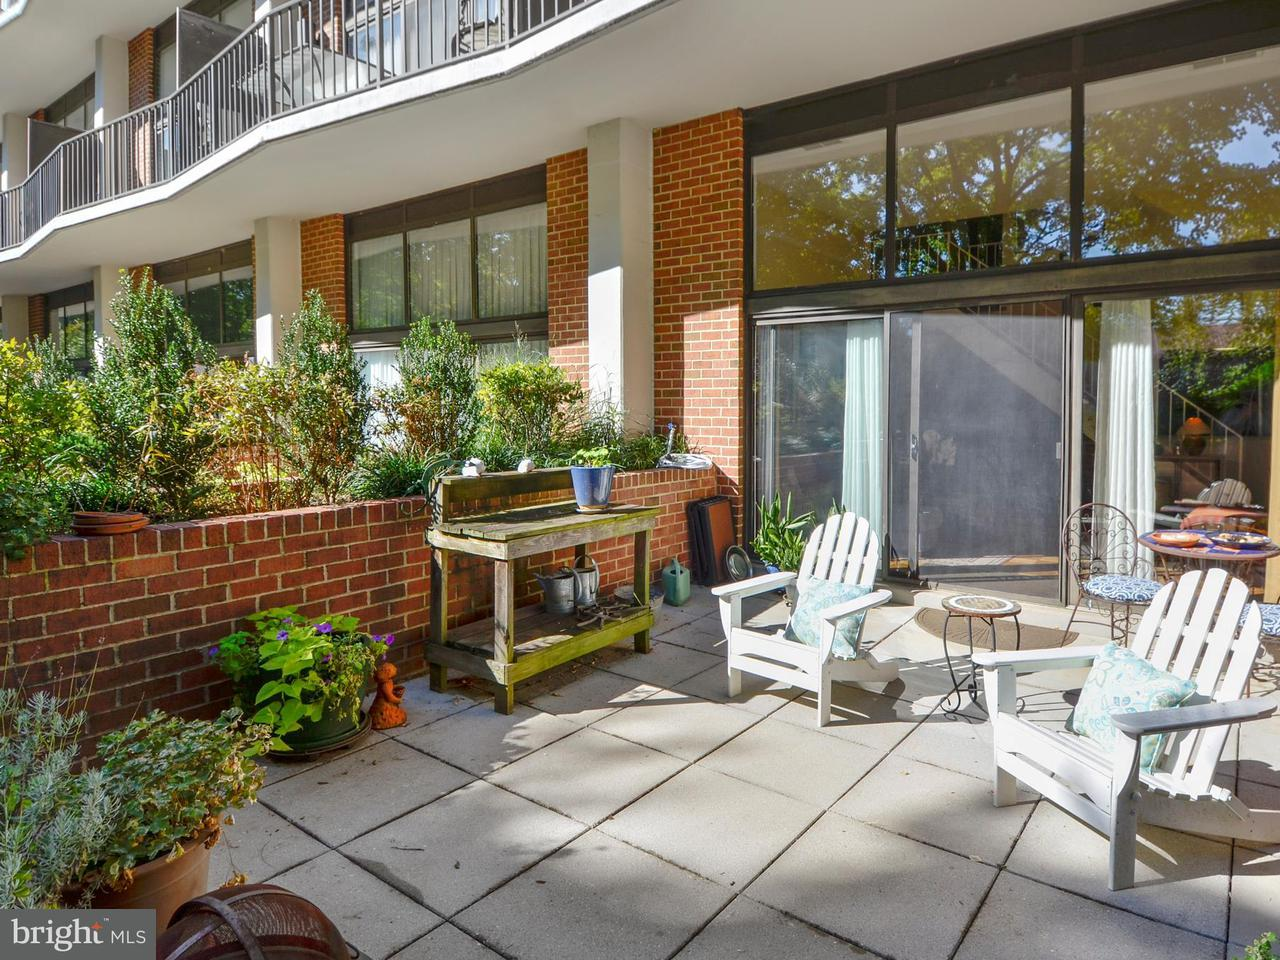 Townhouse for Sale at 3101 NEW MEXICO AVE NW #232 3101 NEW MEXICO AVE NW #232 Washington, District Of Columbia 20016 United States